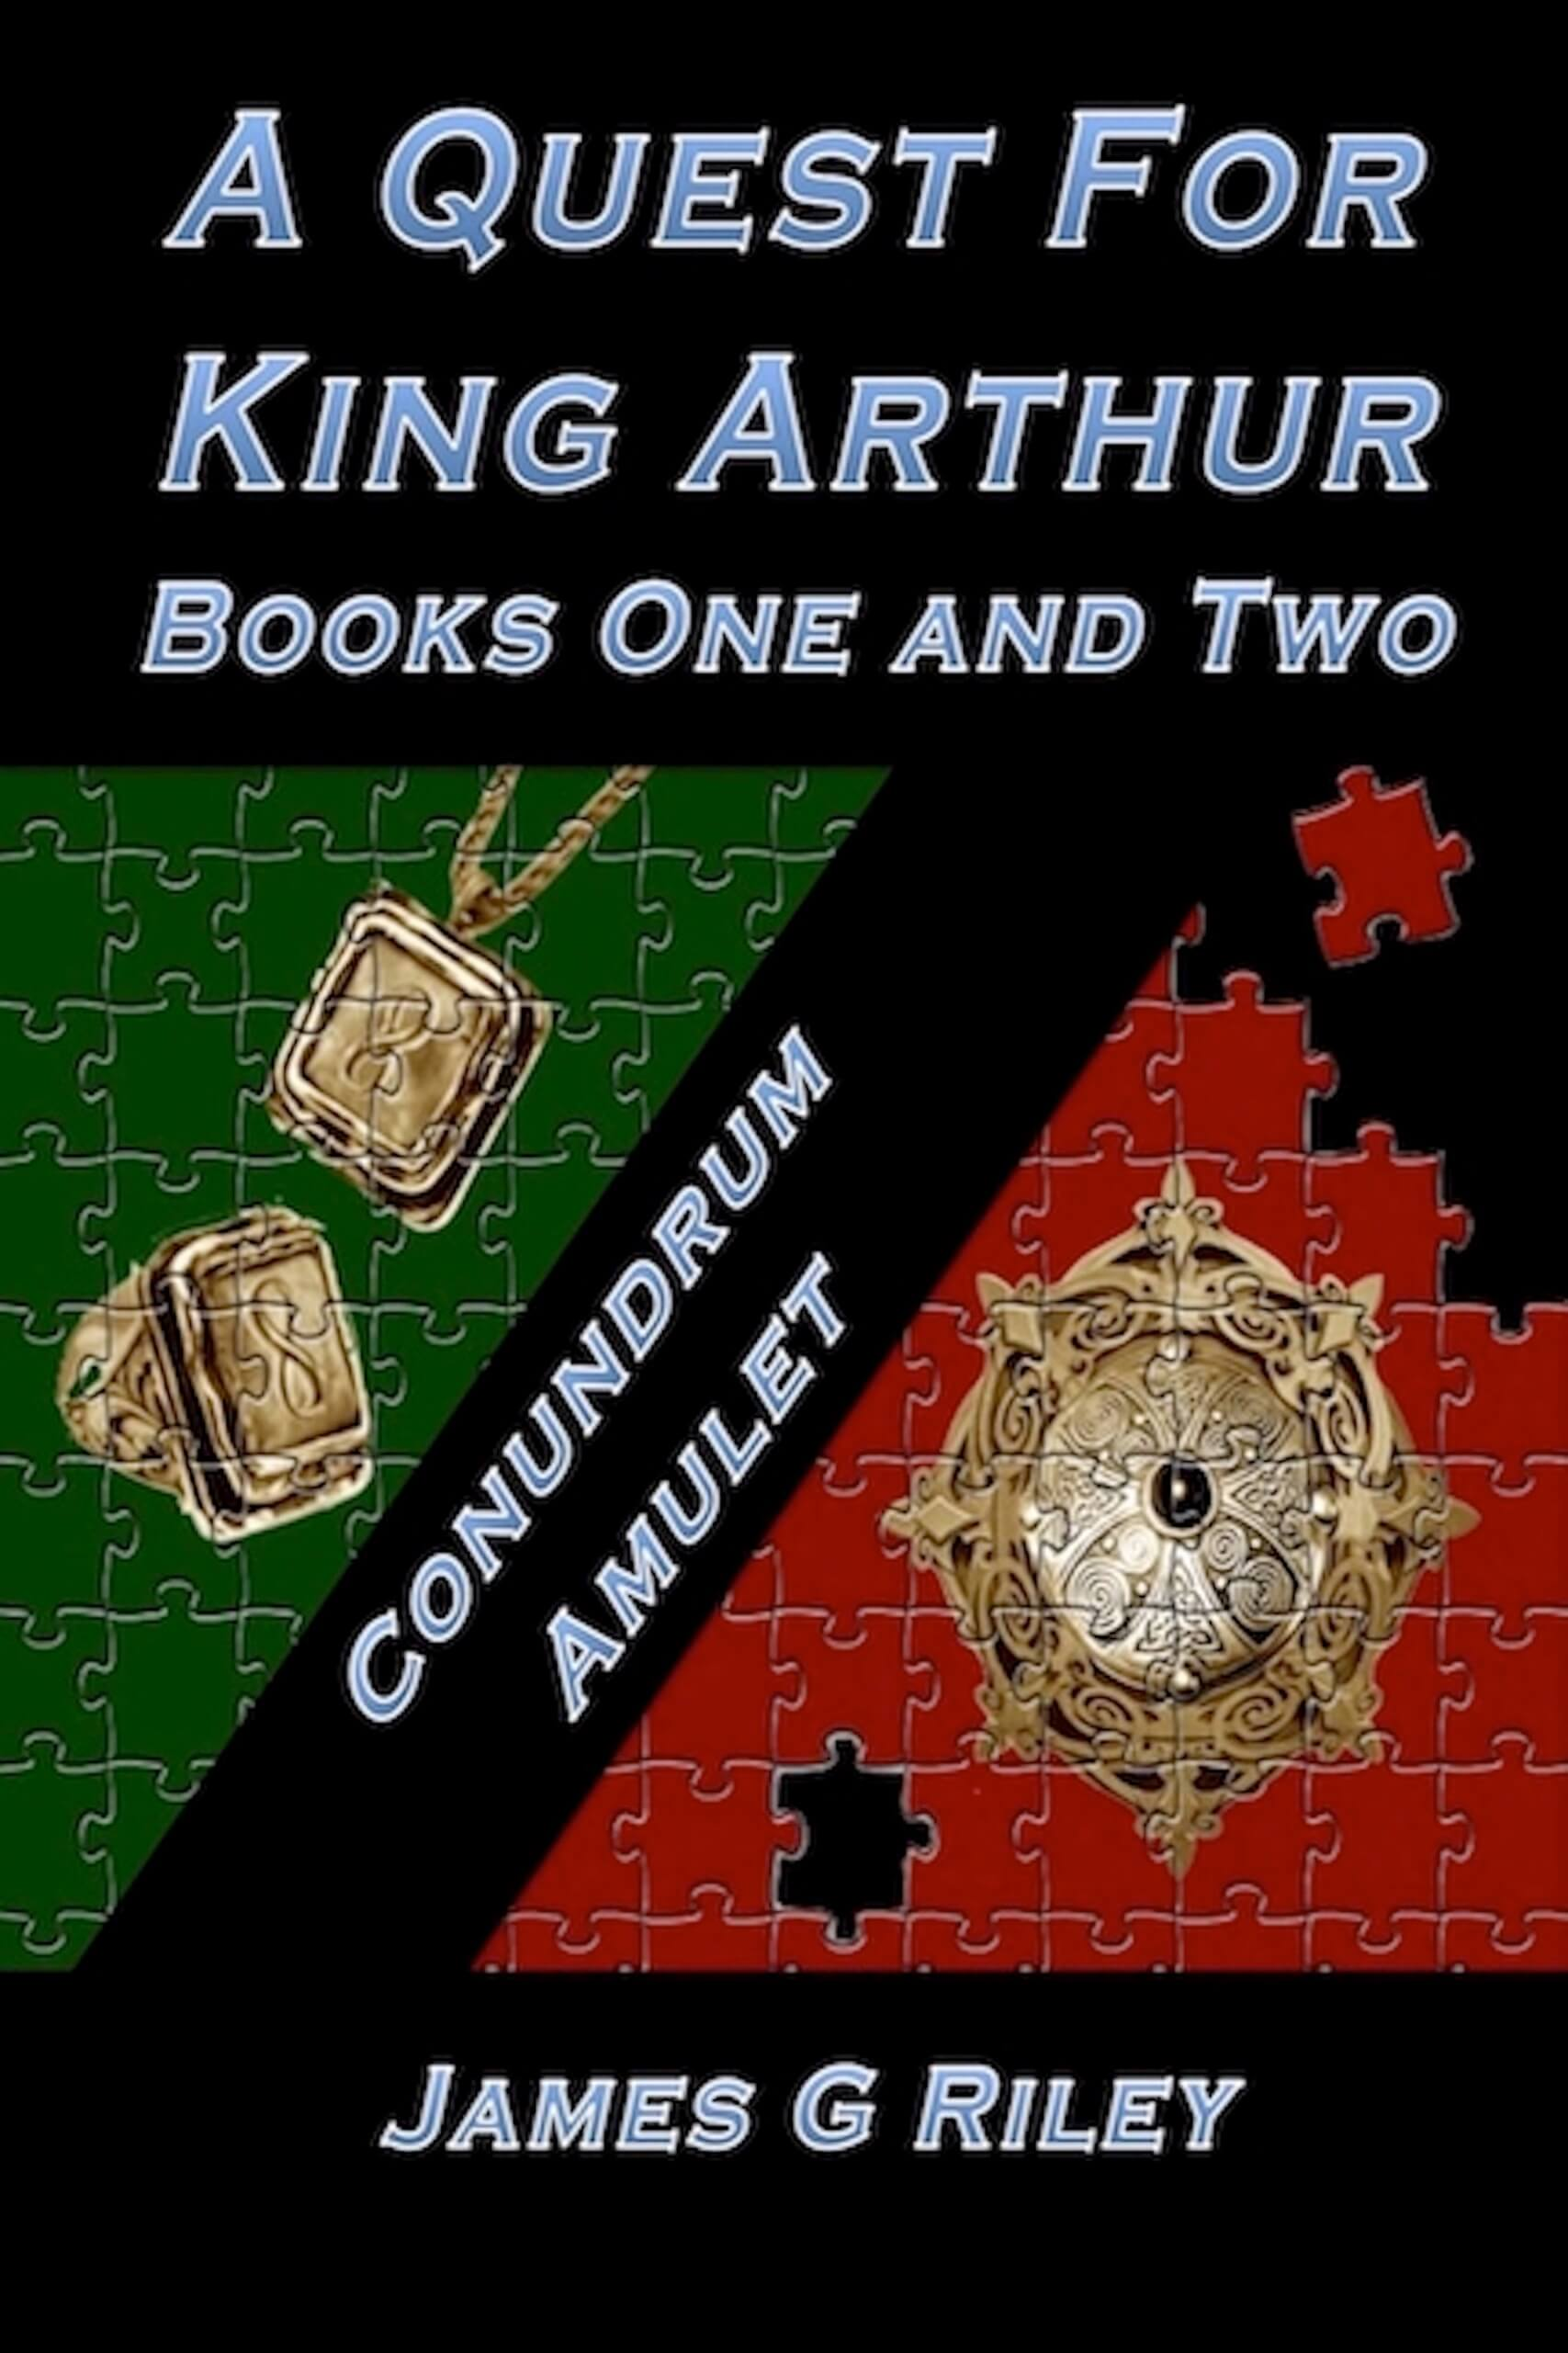 A Quest For King Arthur (Books One and Two)